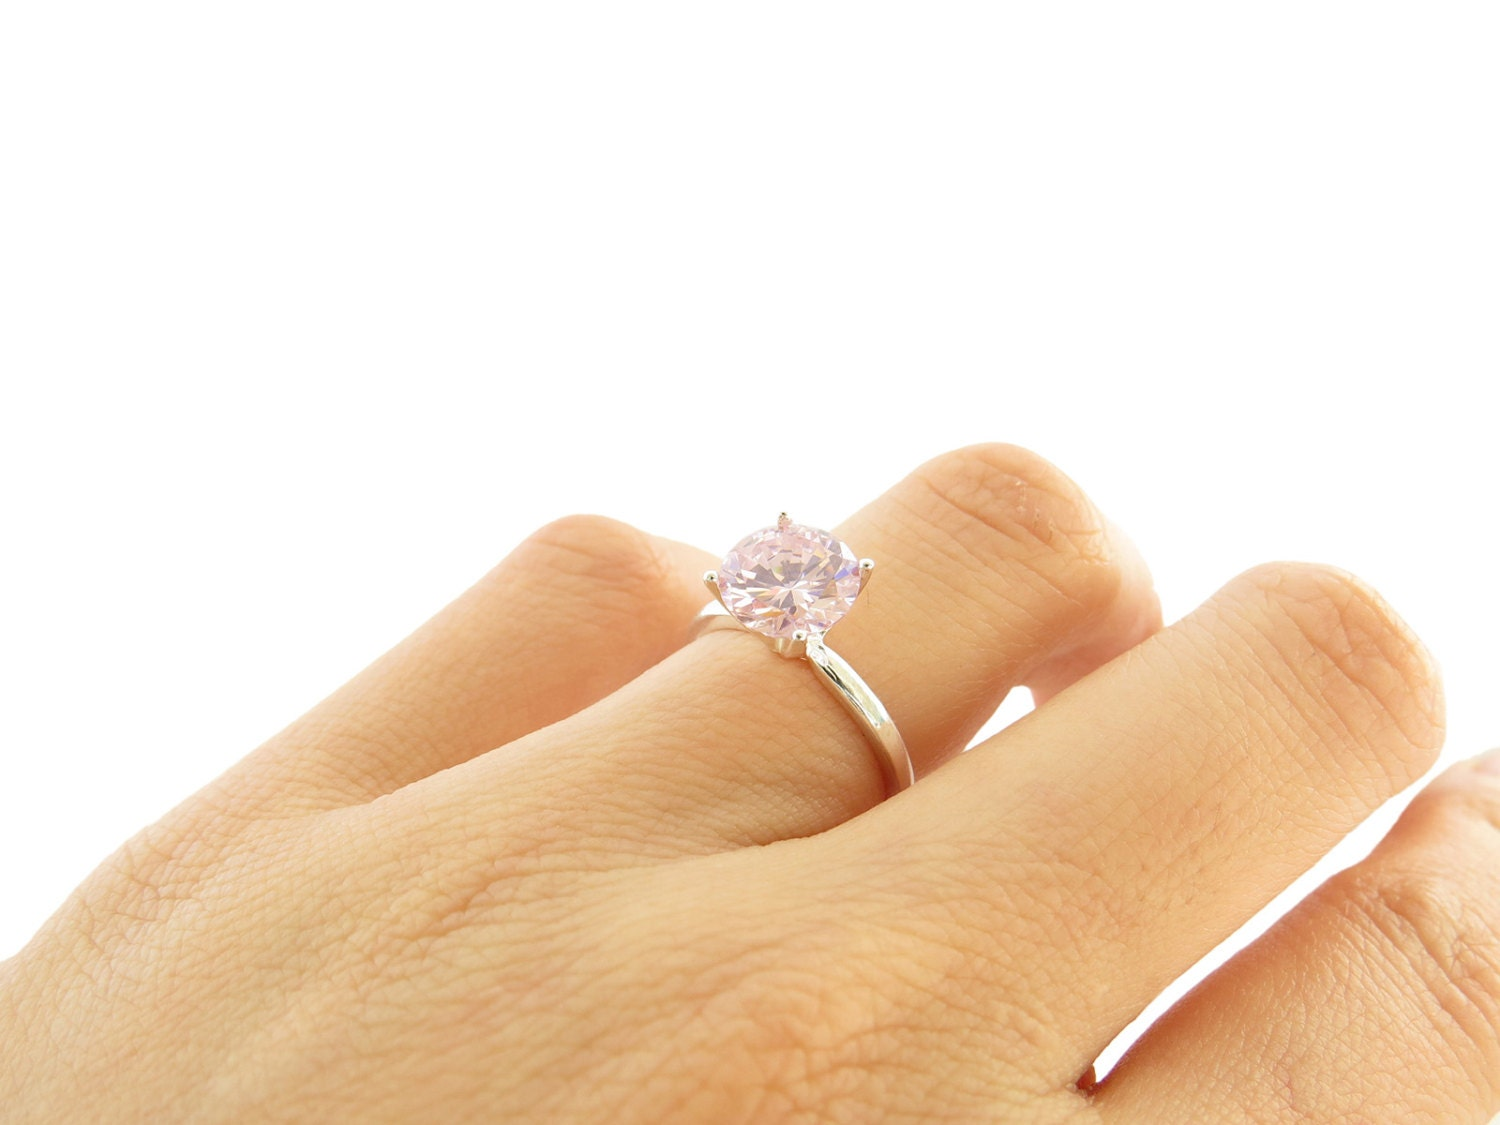 2 Carat Pink Diamond Engagement 8mm Ring Man By TigerGemstones